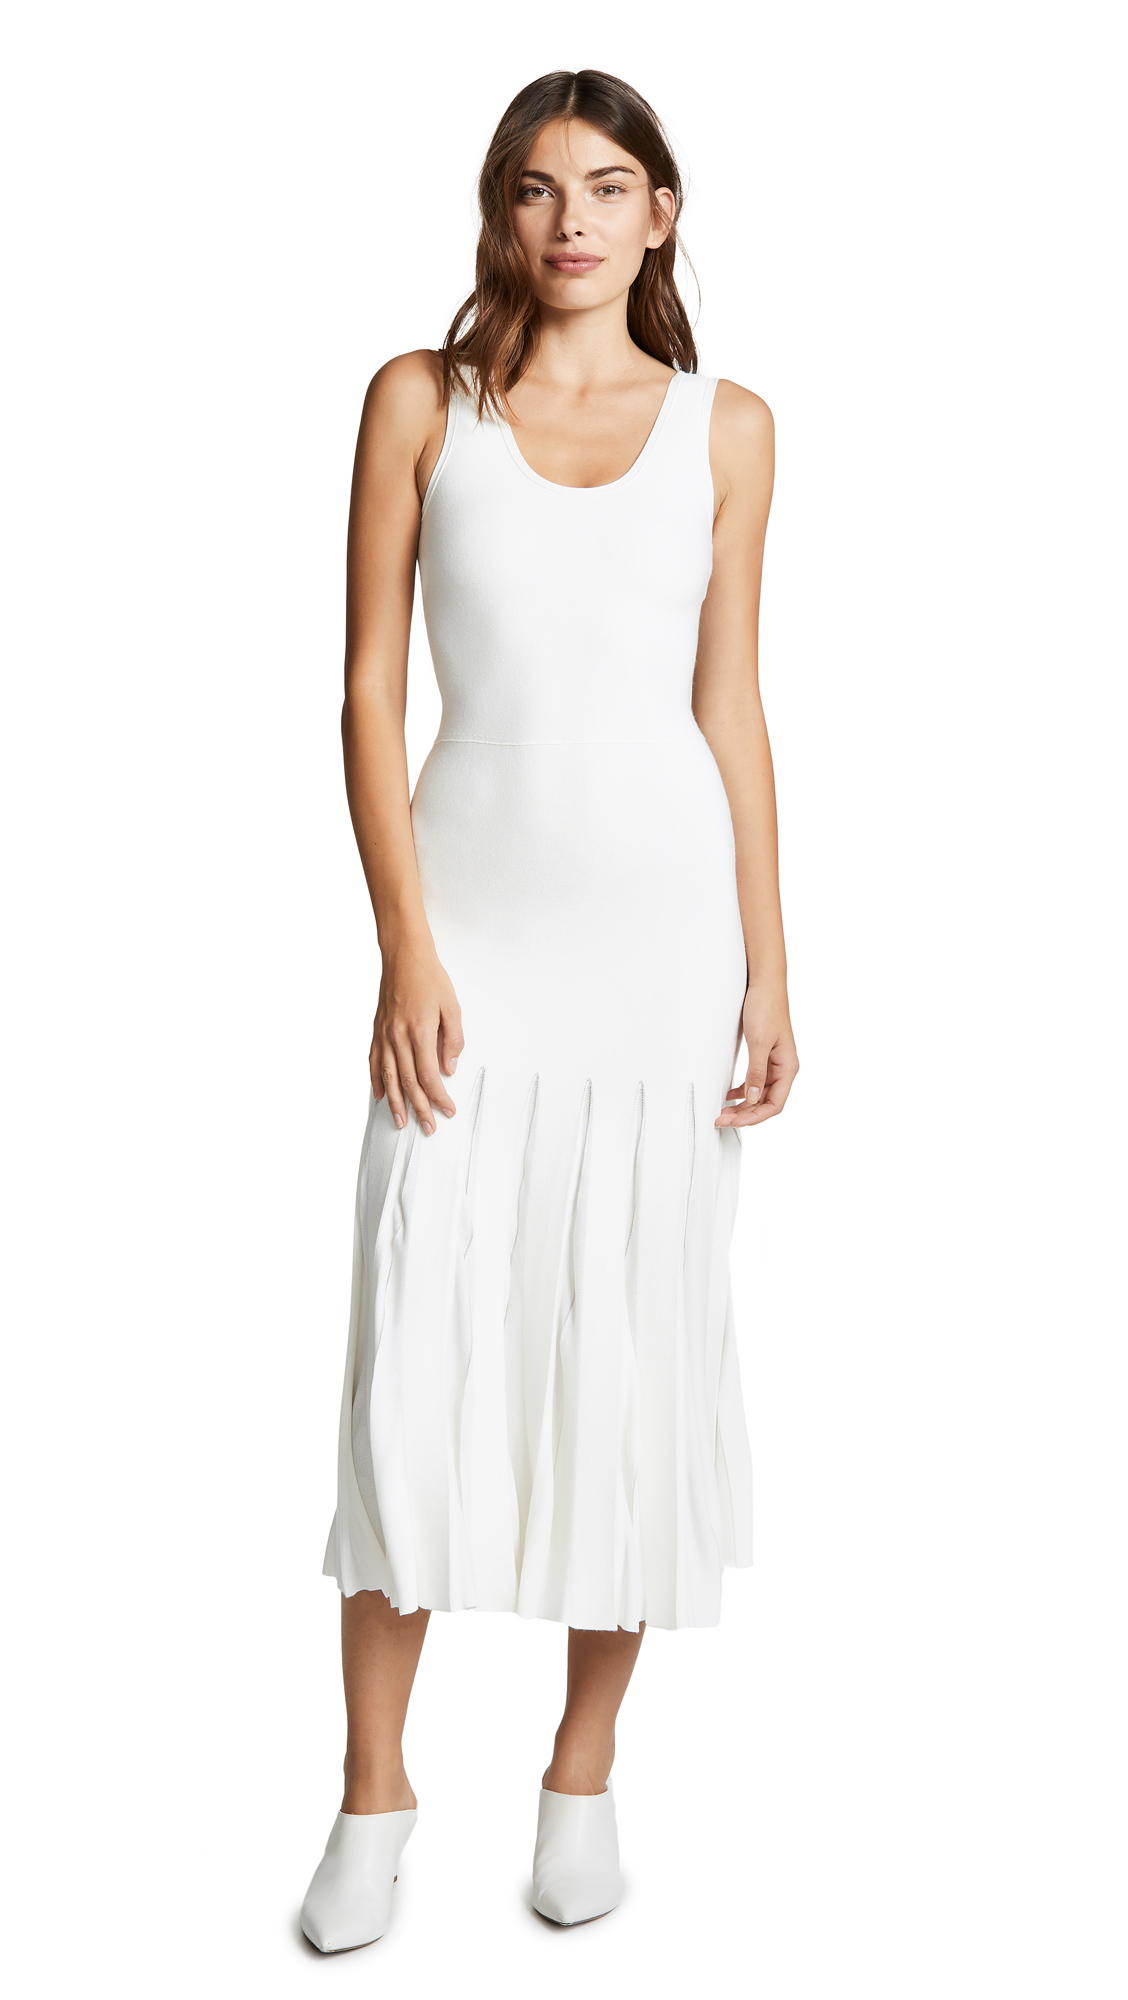 Theory Pleated Tank Dress - Eggshell/Ivory